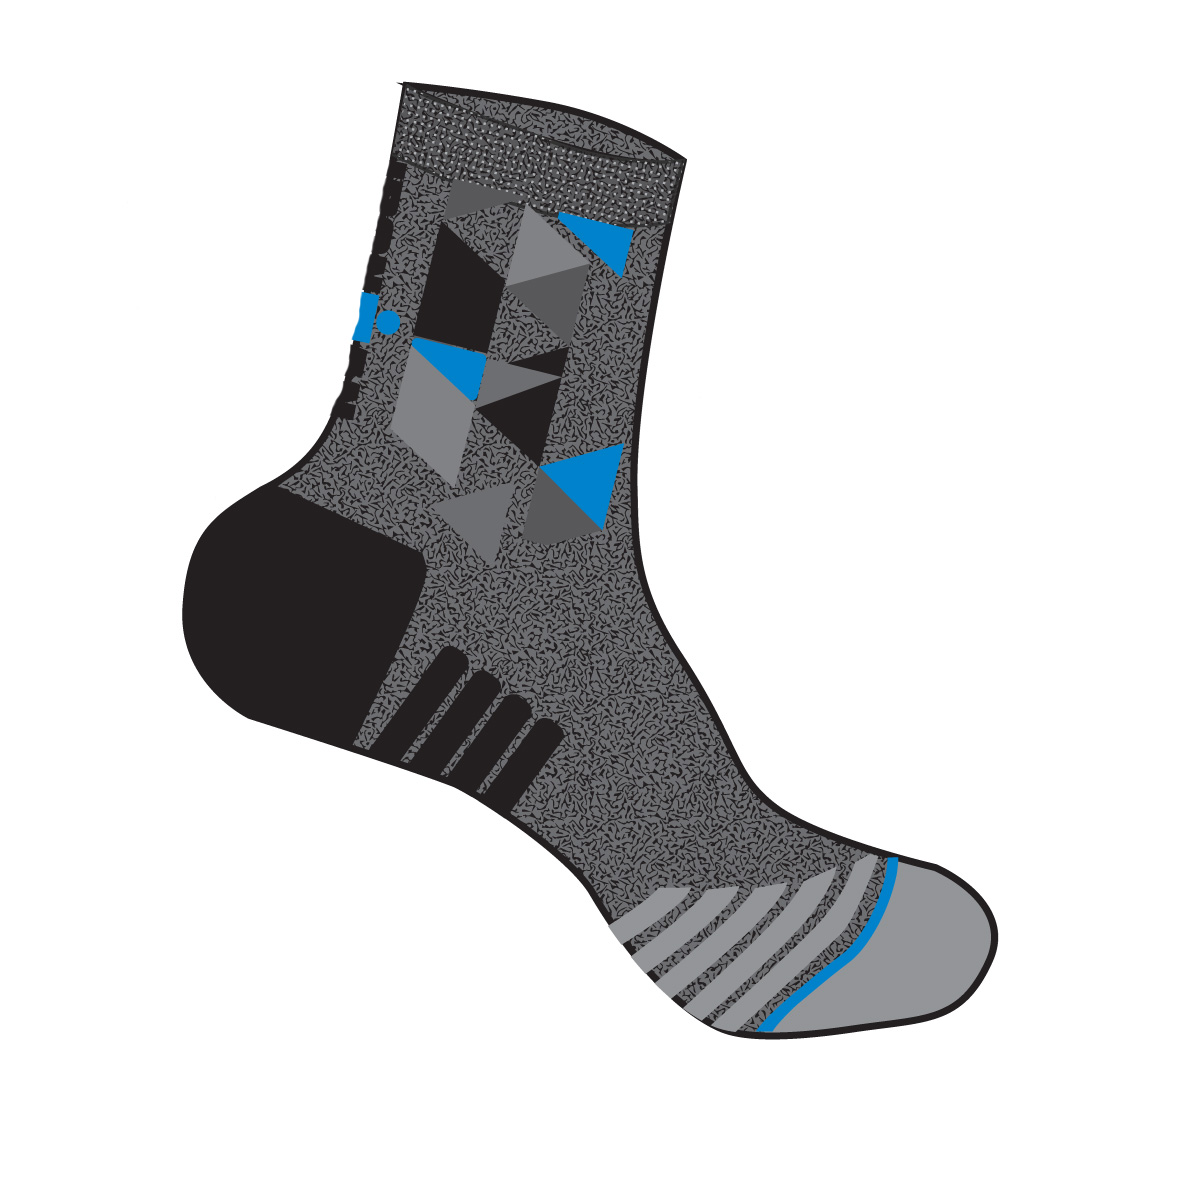 IRONMAN Cycle Sock - Heathered Grey Geo - Large